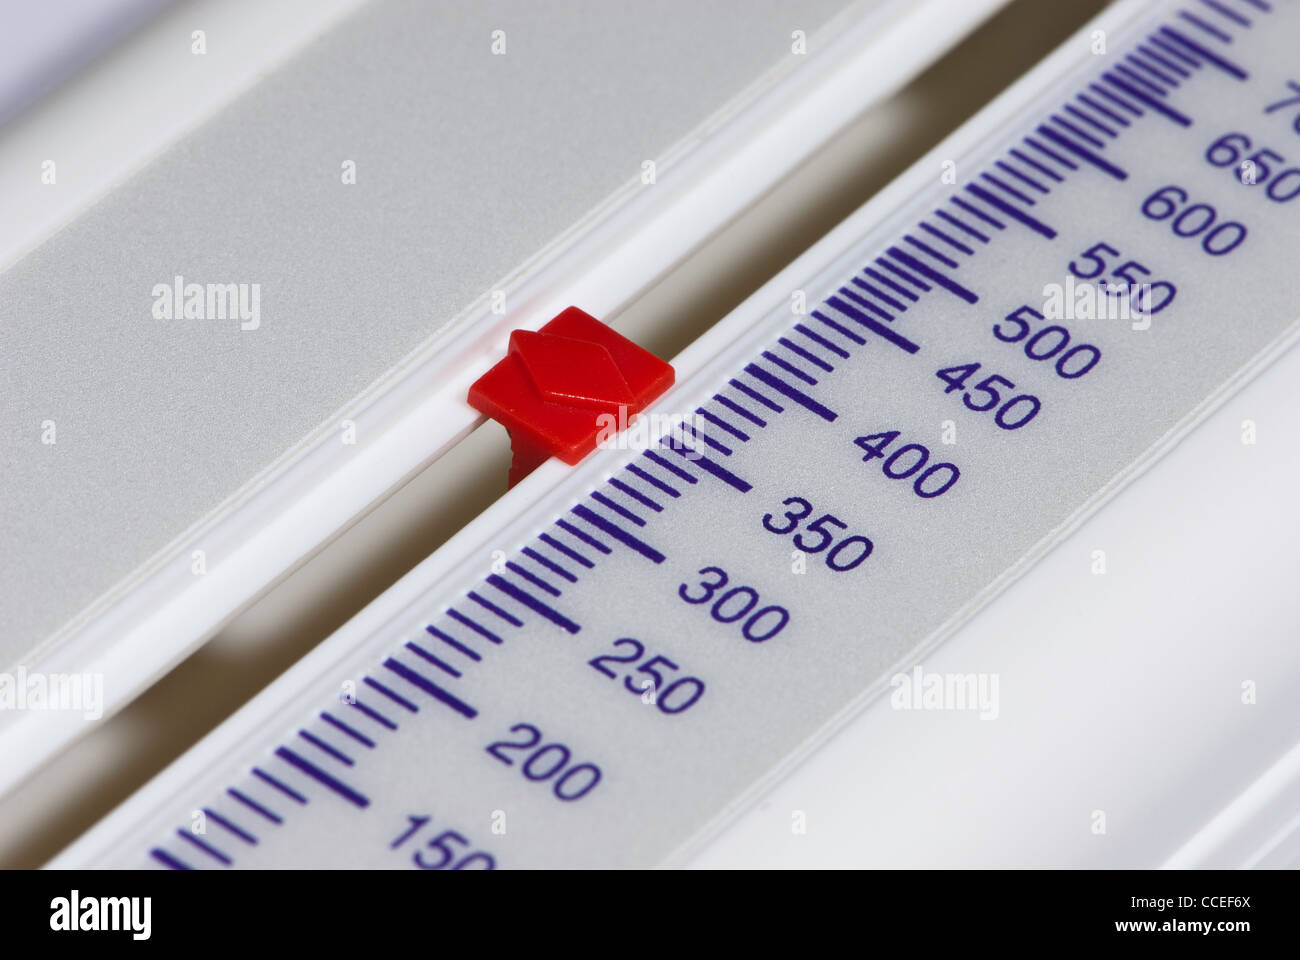 Close up of scale on a Peak flow meter at 350 - Stock Image